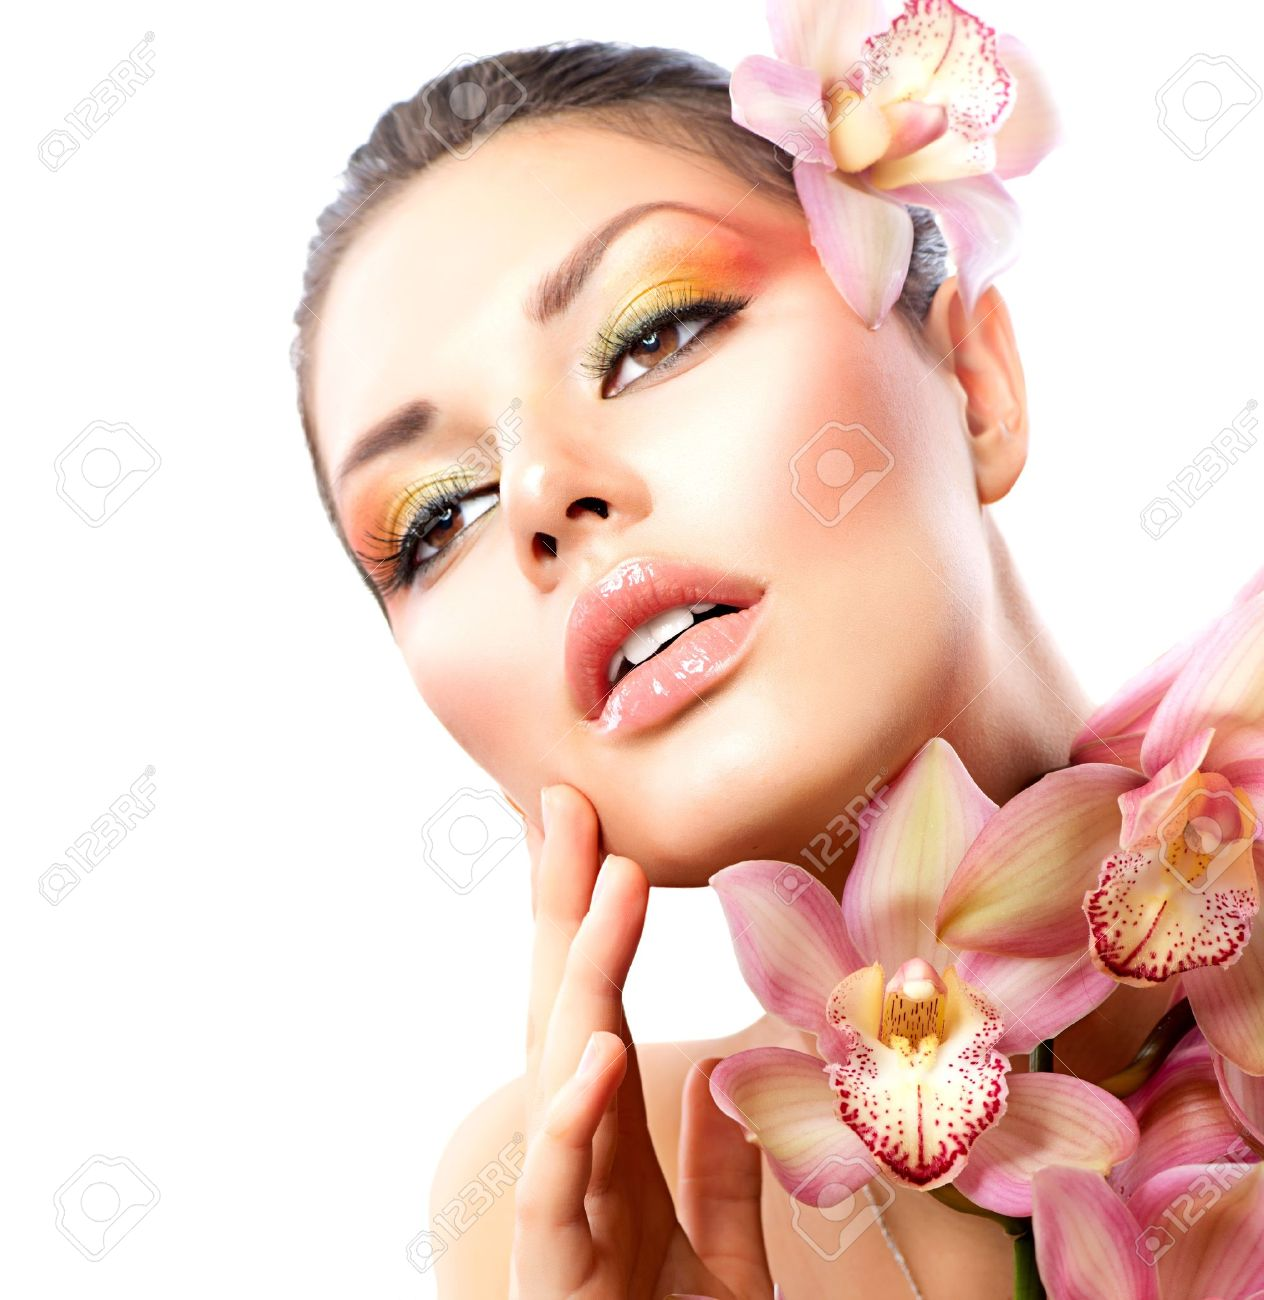 Beautiful Spa Girl With Orchid Flowers Isolated on White Stock Photo - 17535814